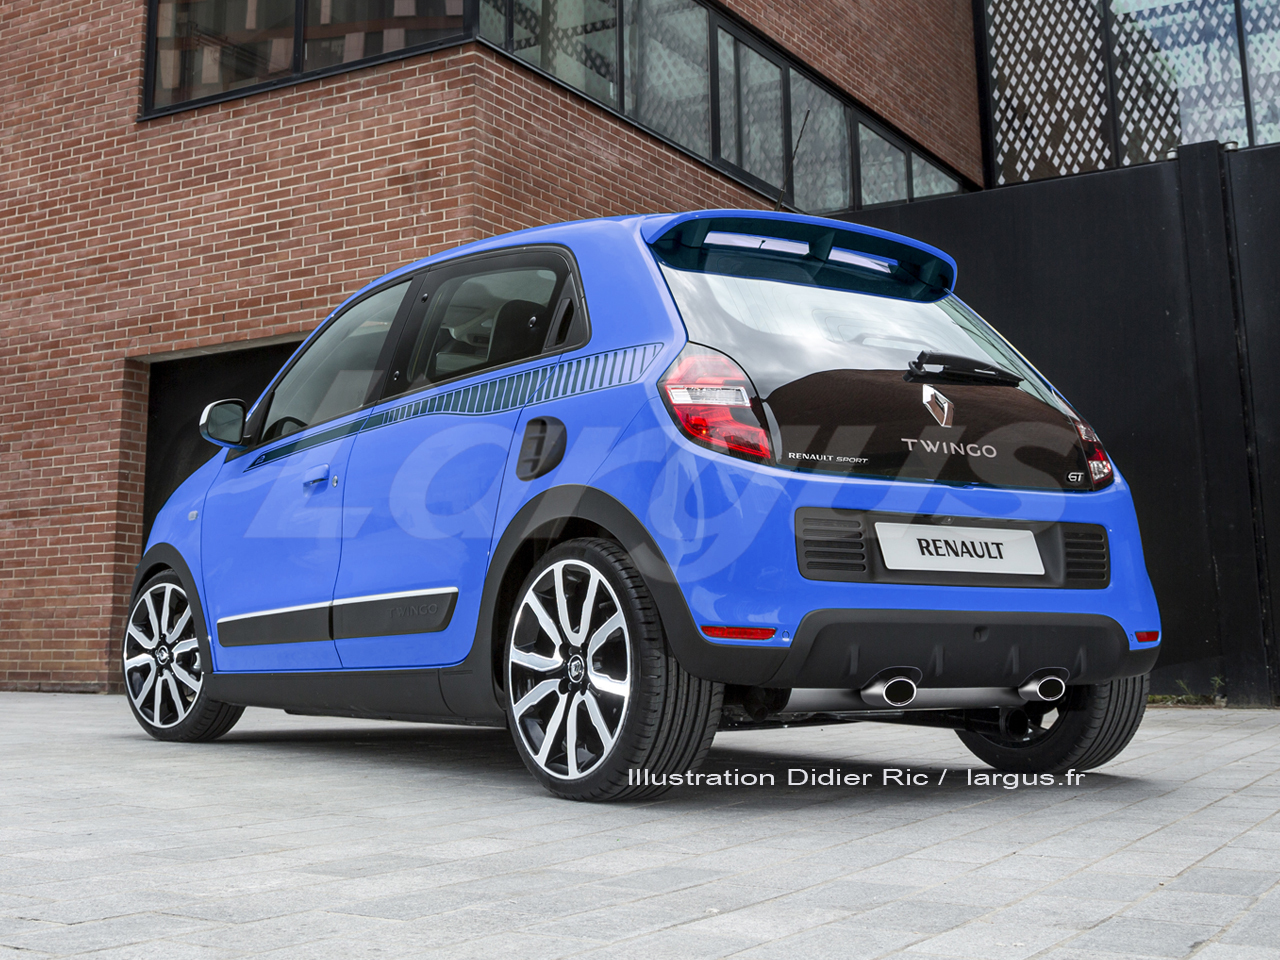 Renault twingo 2018 deals / Dx coupons 2018